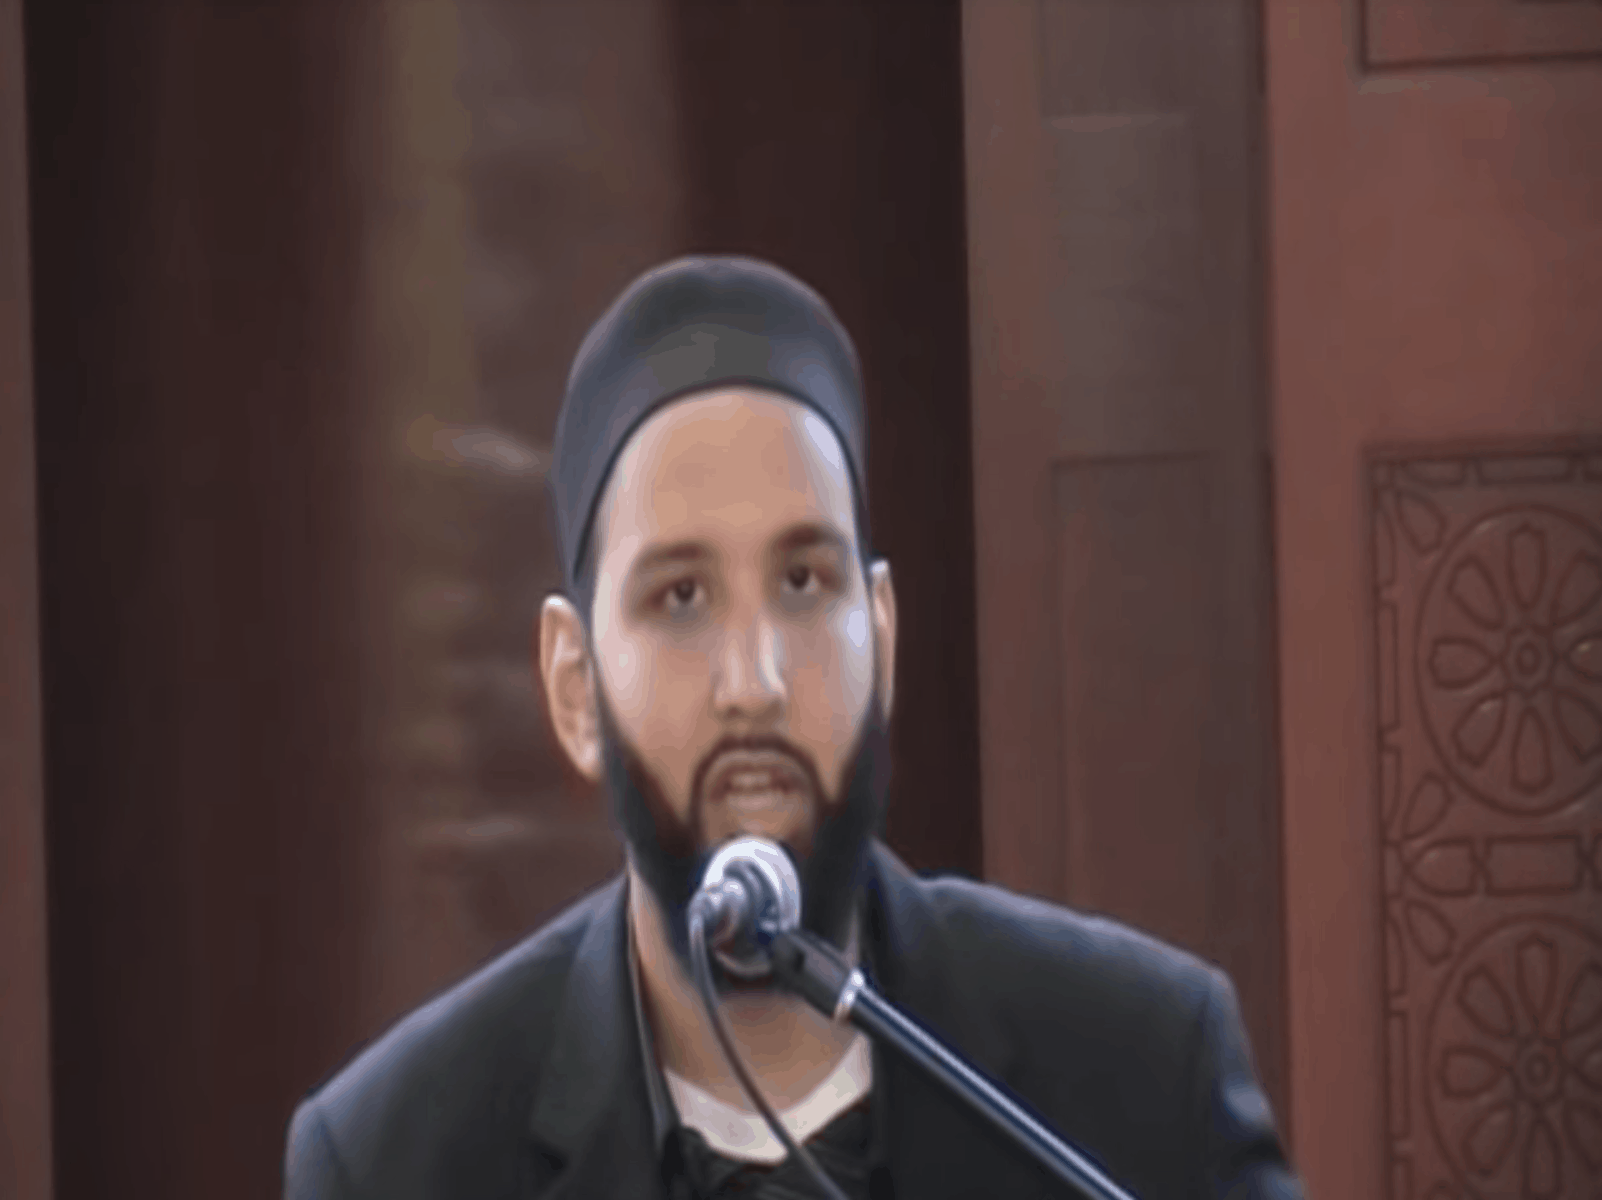 Omar Suleiman – The Day of Judgement